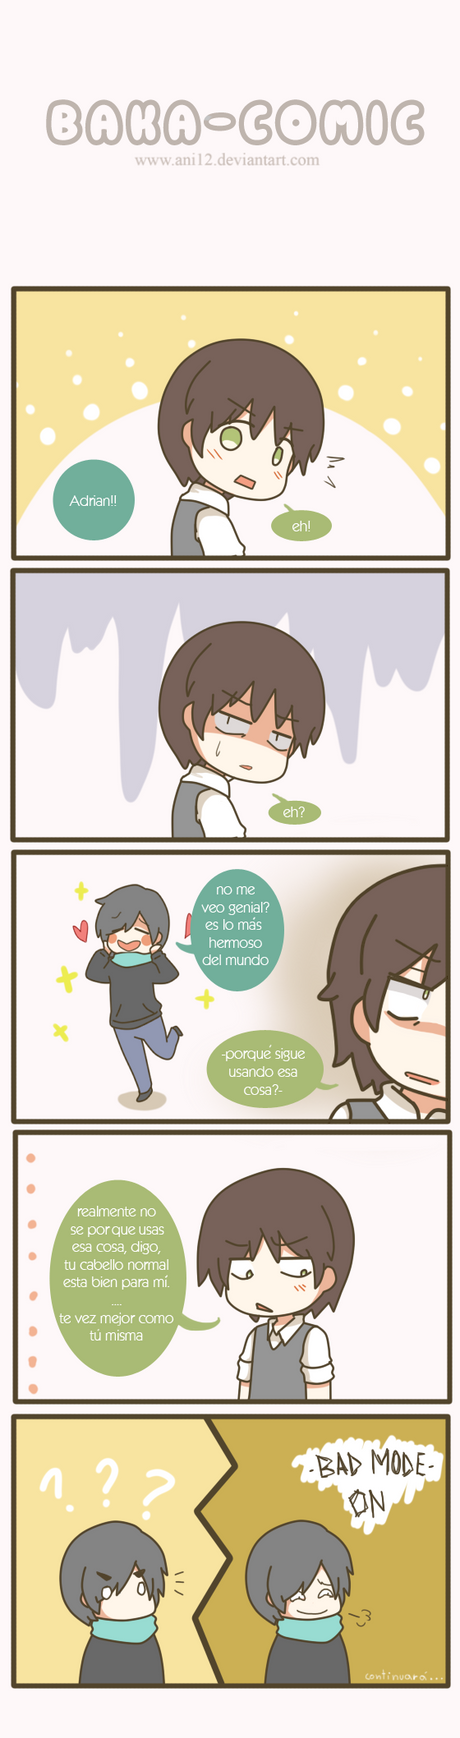 Baka-Comic 23/ parte 1 by ani12